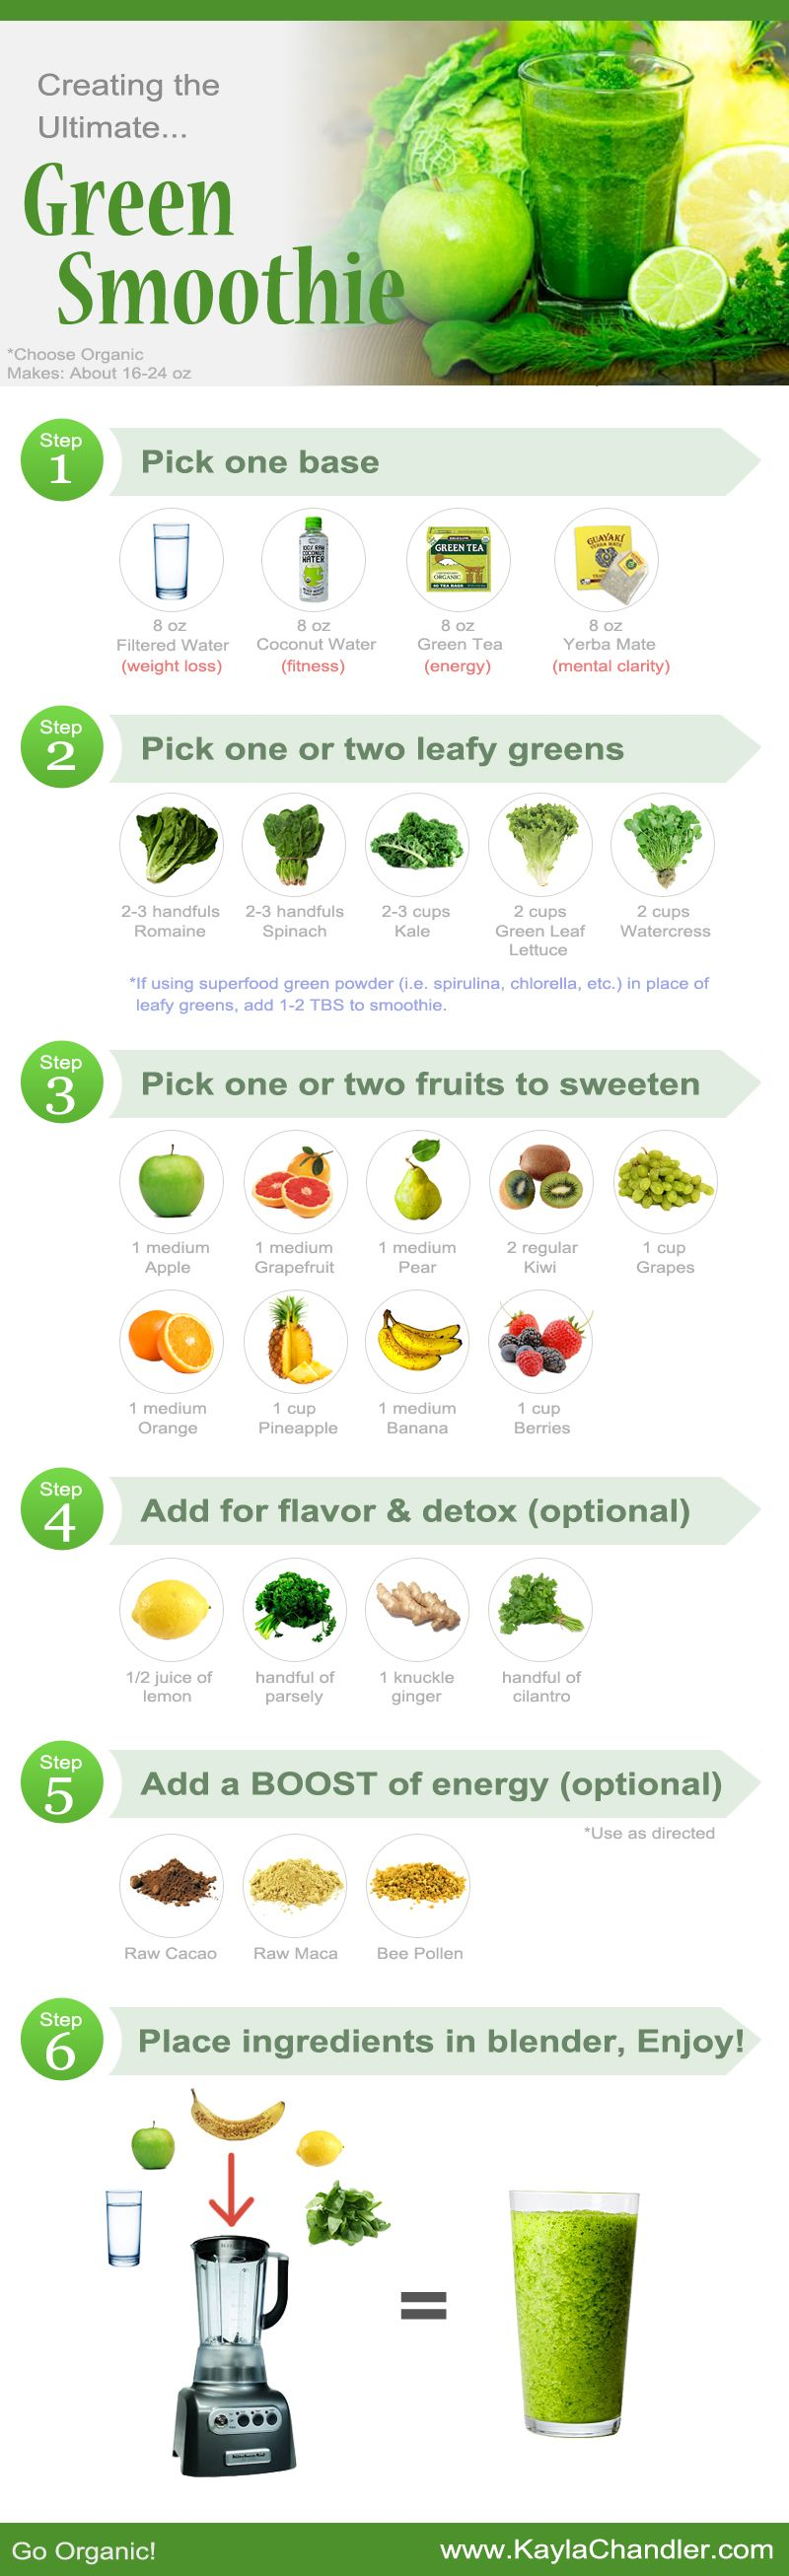 Guide to making the ultimate Green Smoothie for health, weight loss, and energy... Great for reference! #kombuchaguru #juicing Also check out: http://kombuchaguru.com